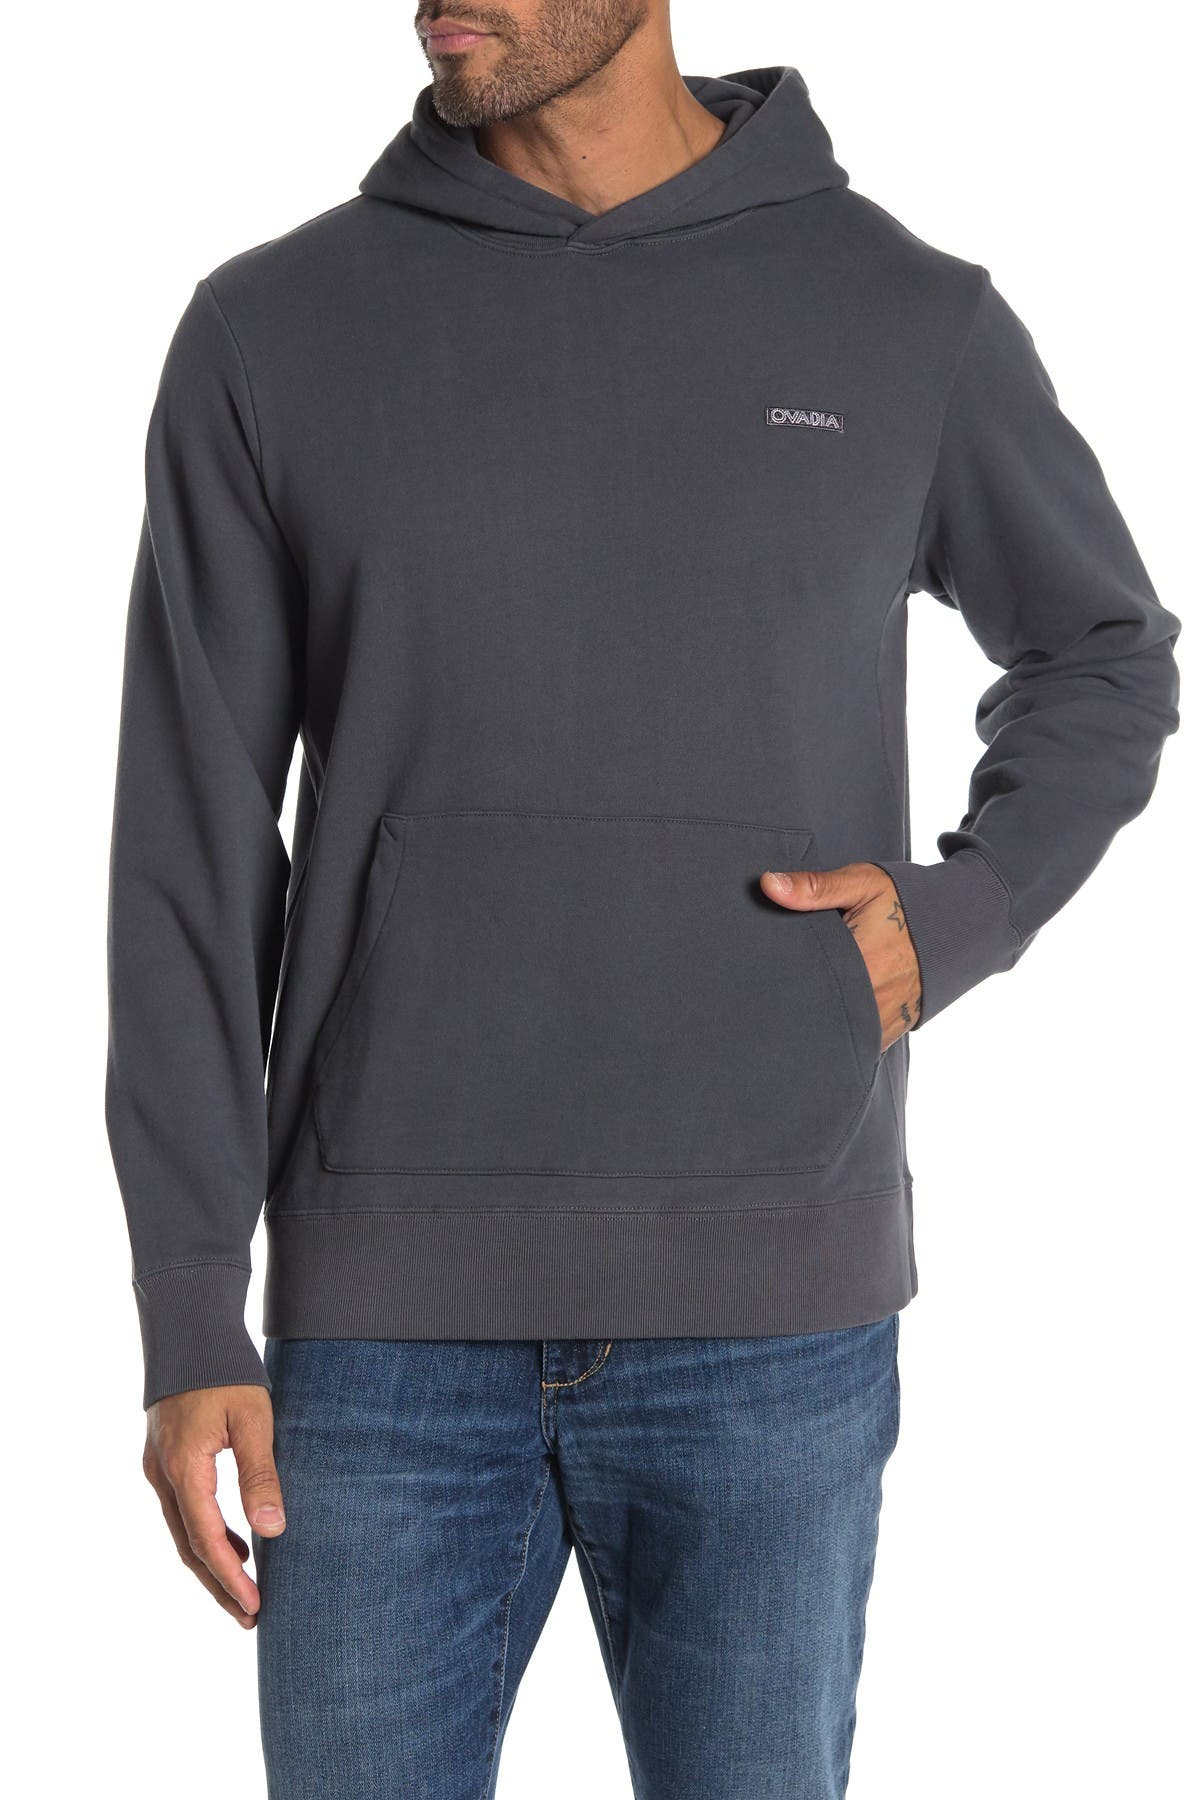 Image of OVADIA AND SONS Type 01 Pullover Hoodie